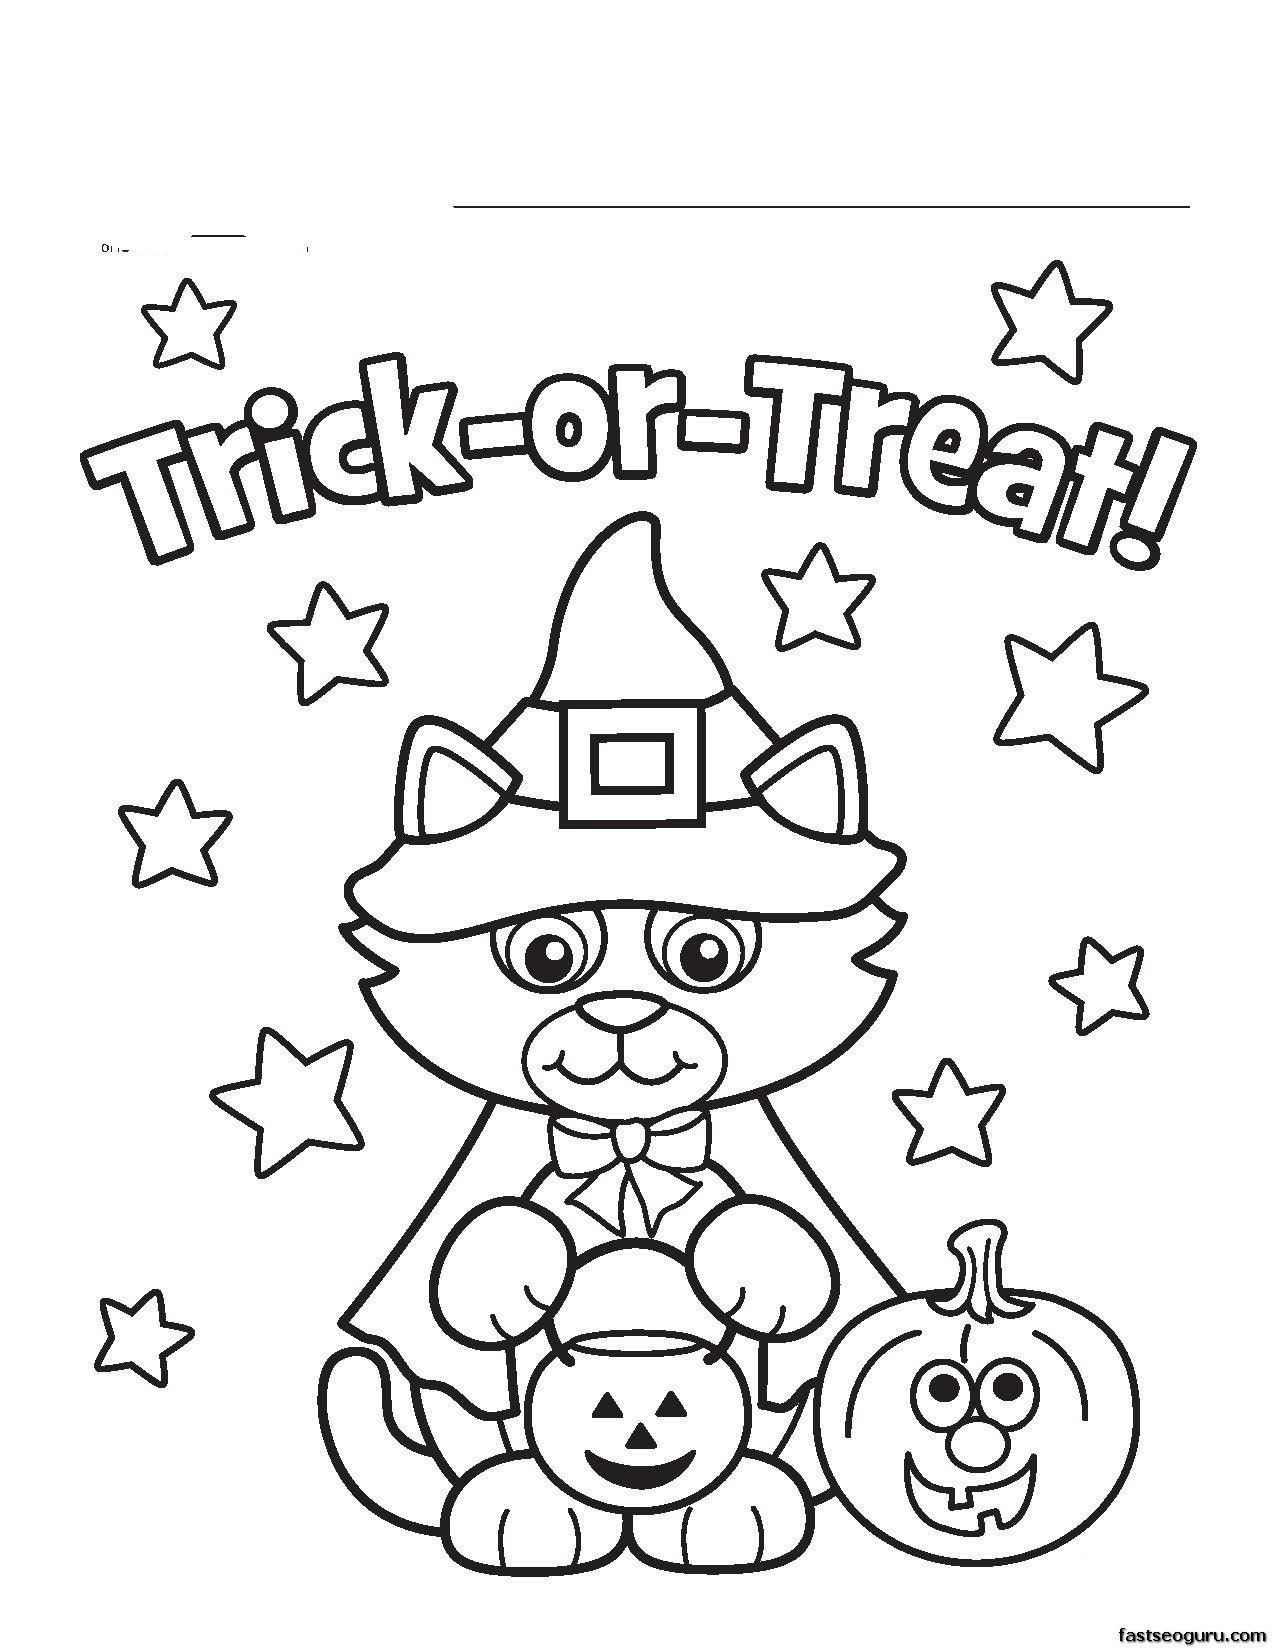 Coloring book pages halloween - Word Search Puzzles And Coloring